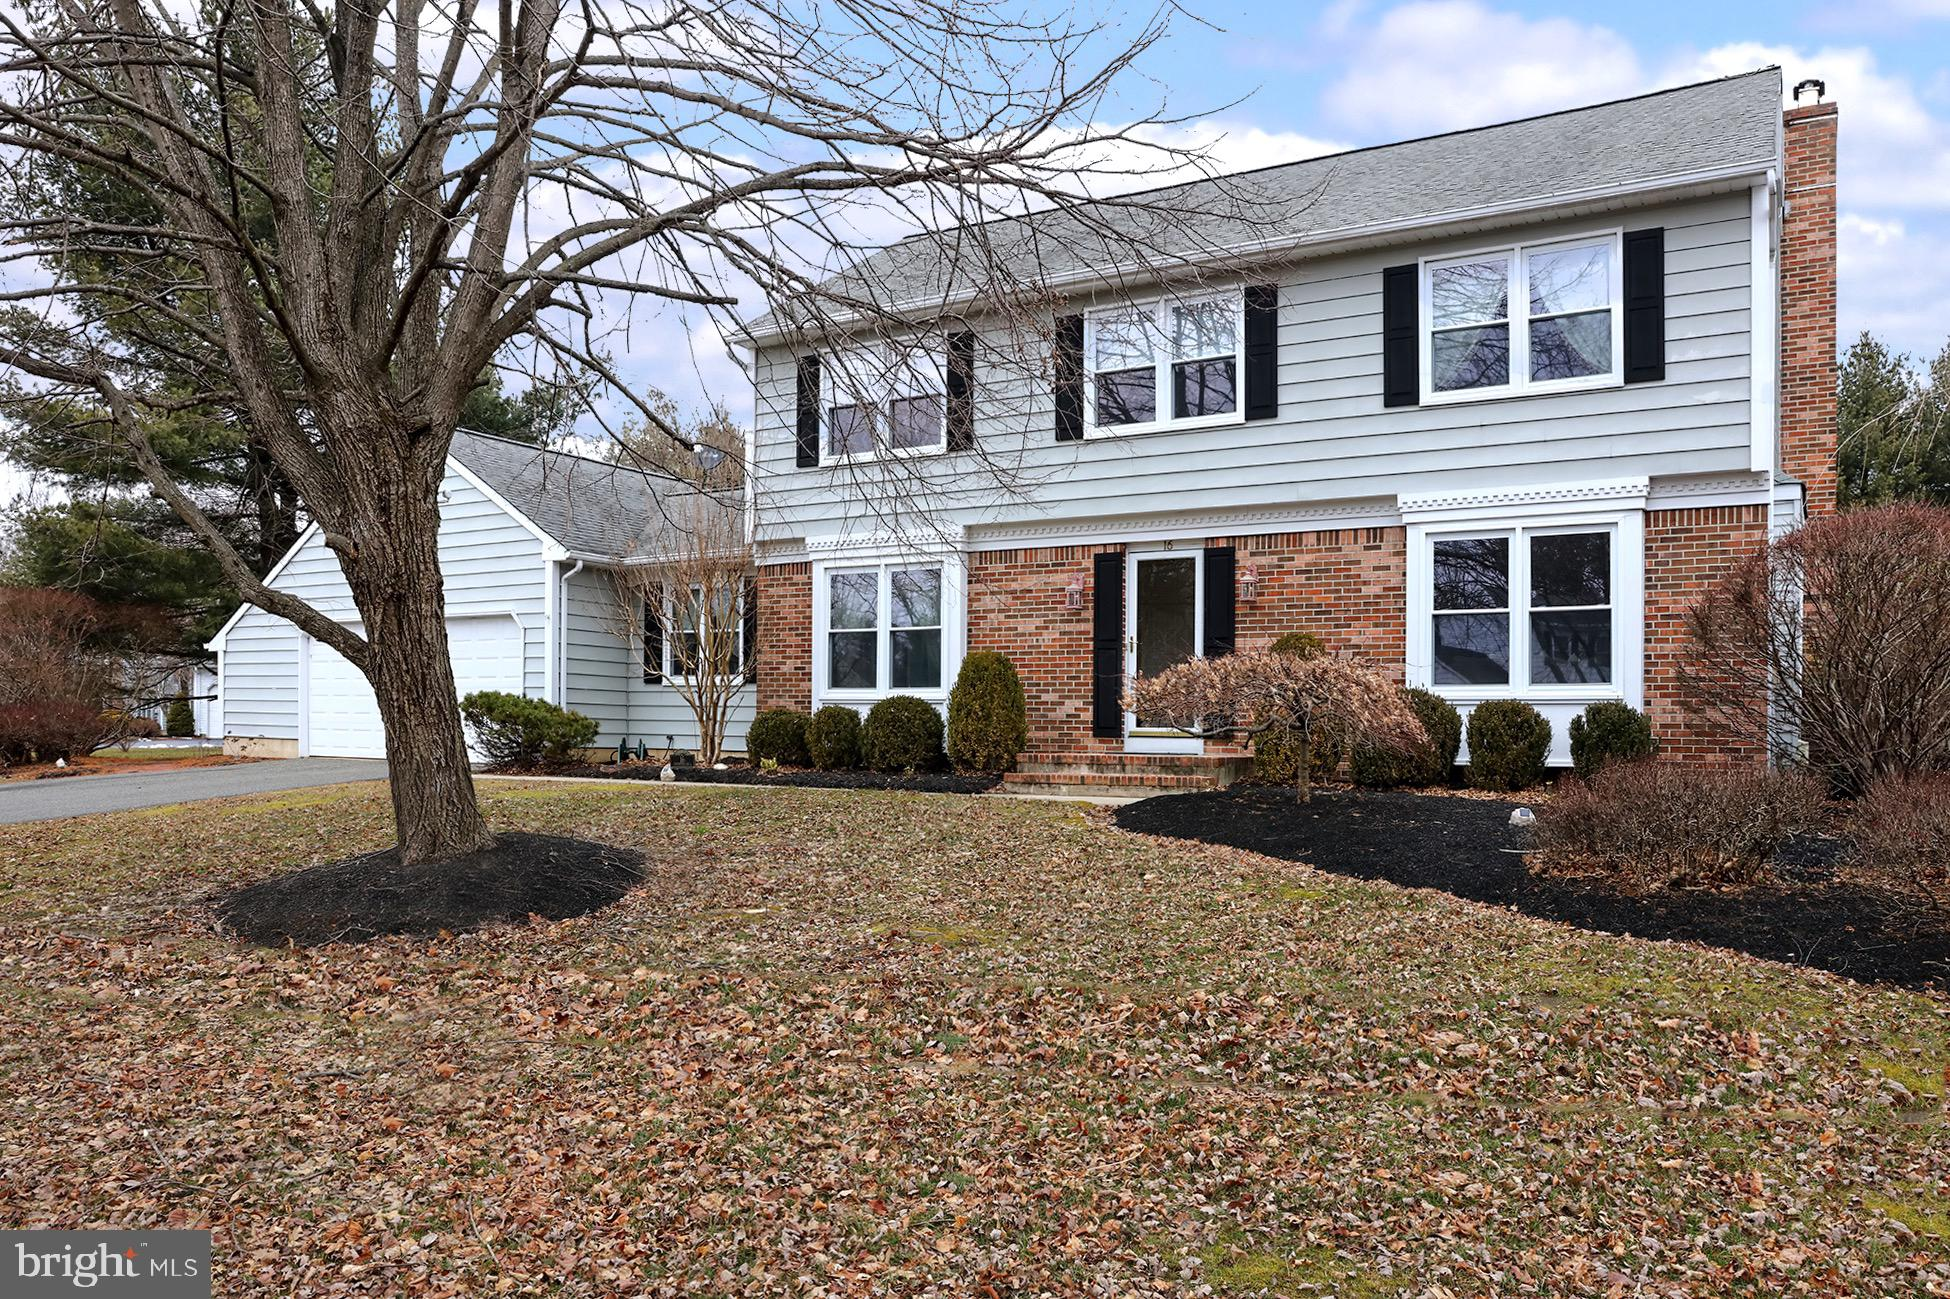 16 GREENFIELD DRIVE S, PRINCETON JUNCTION, NJ 08550